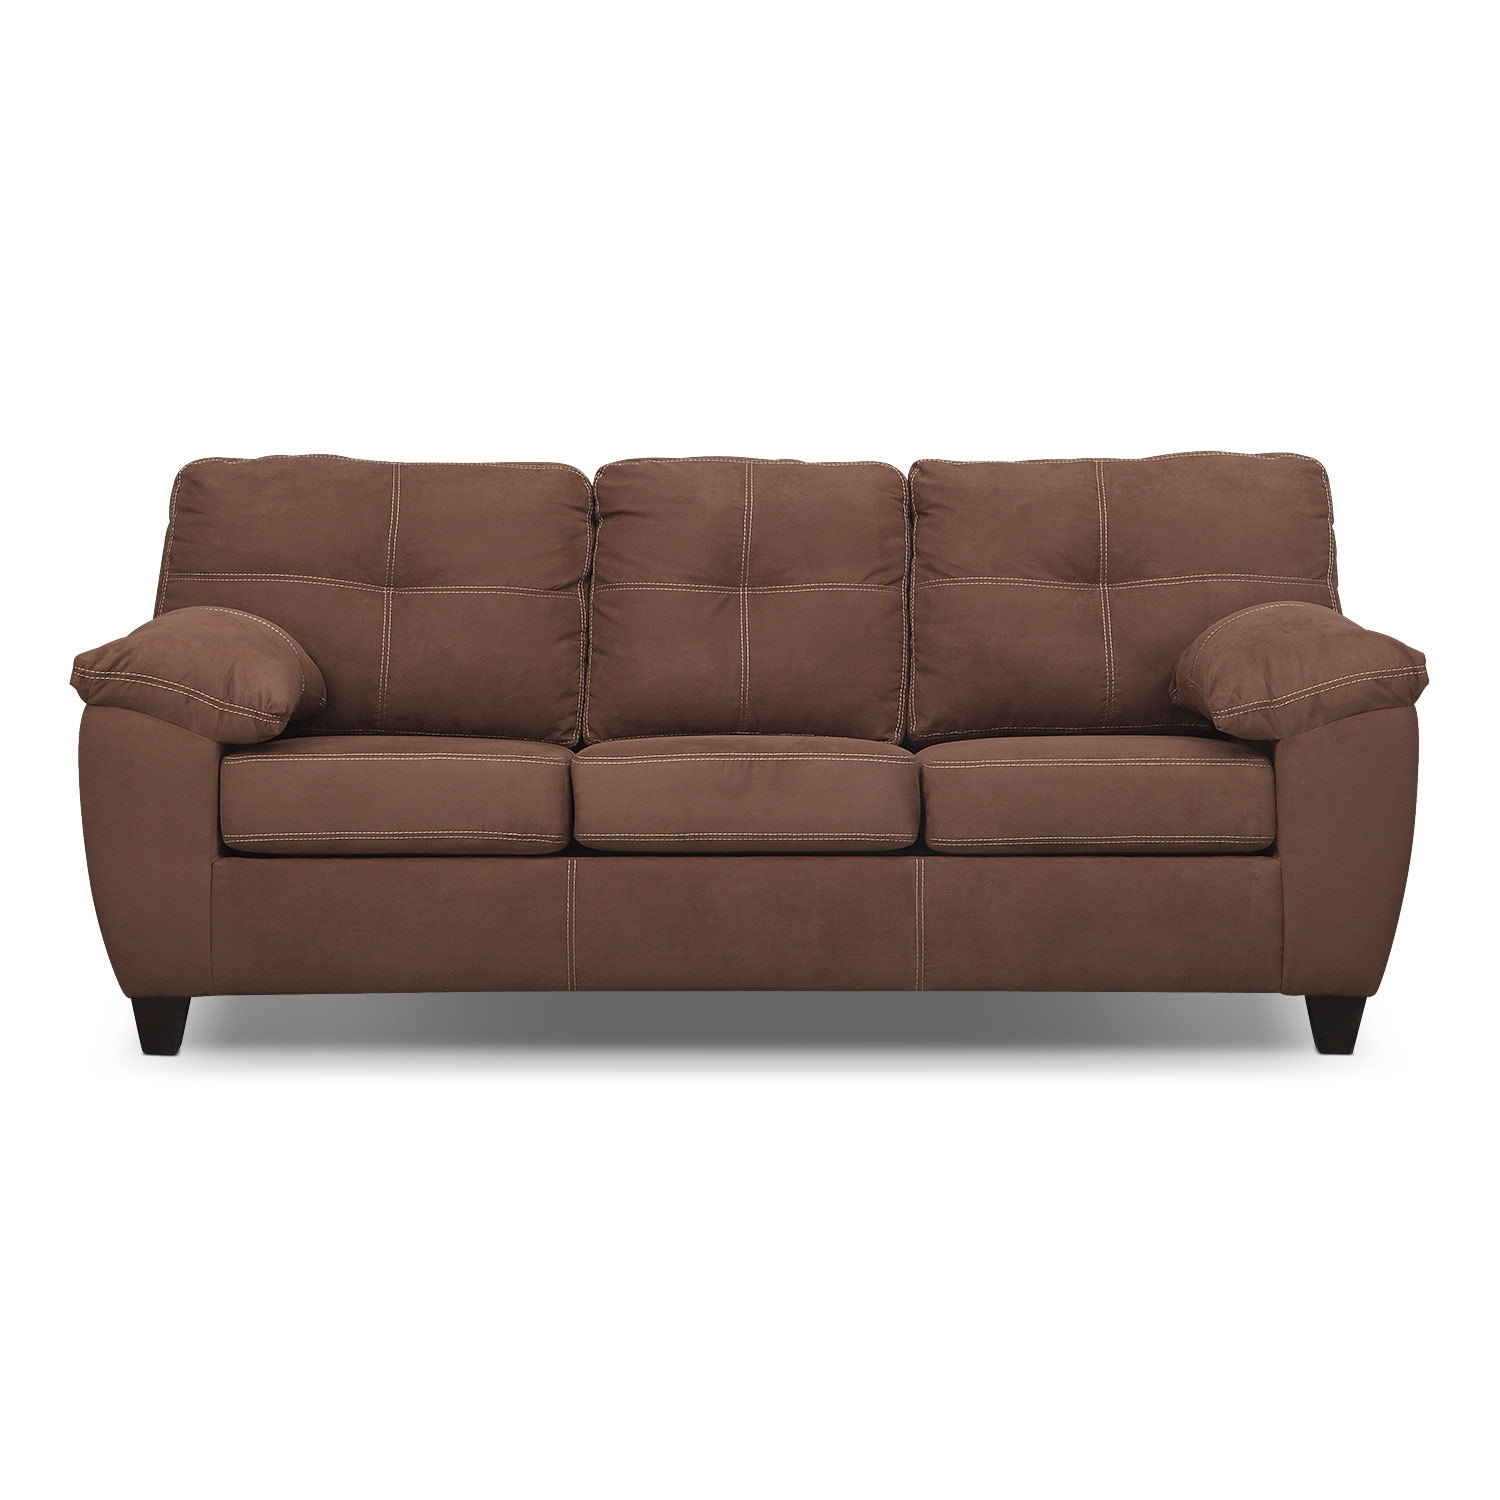 Ricardo Queen Memory Foam Sleeper Sofa   Coffee By Factory Outlet